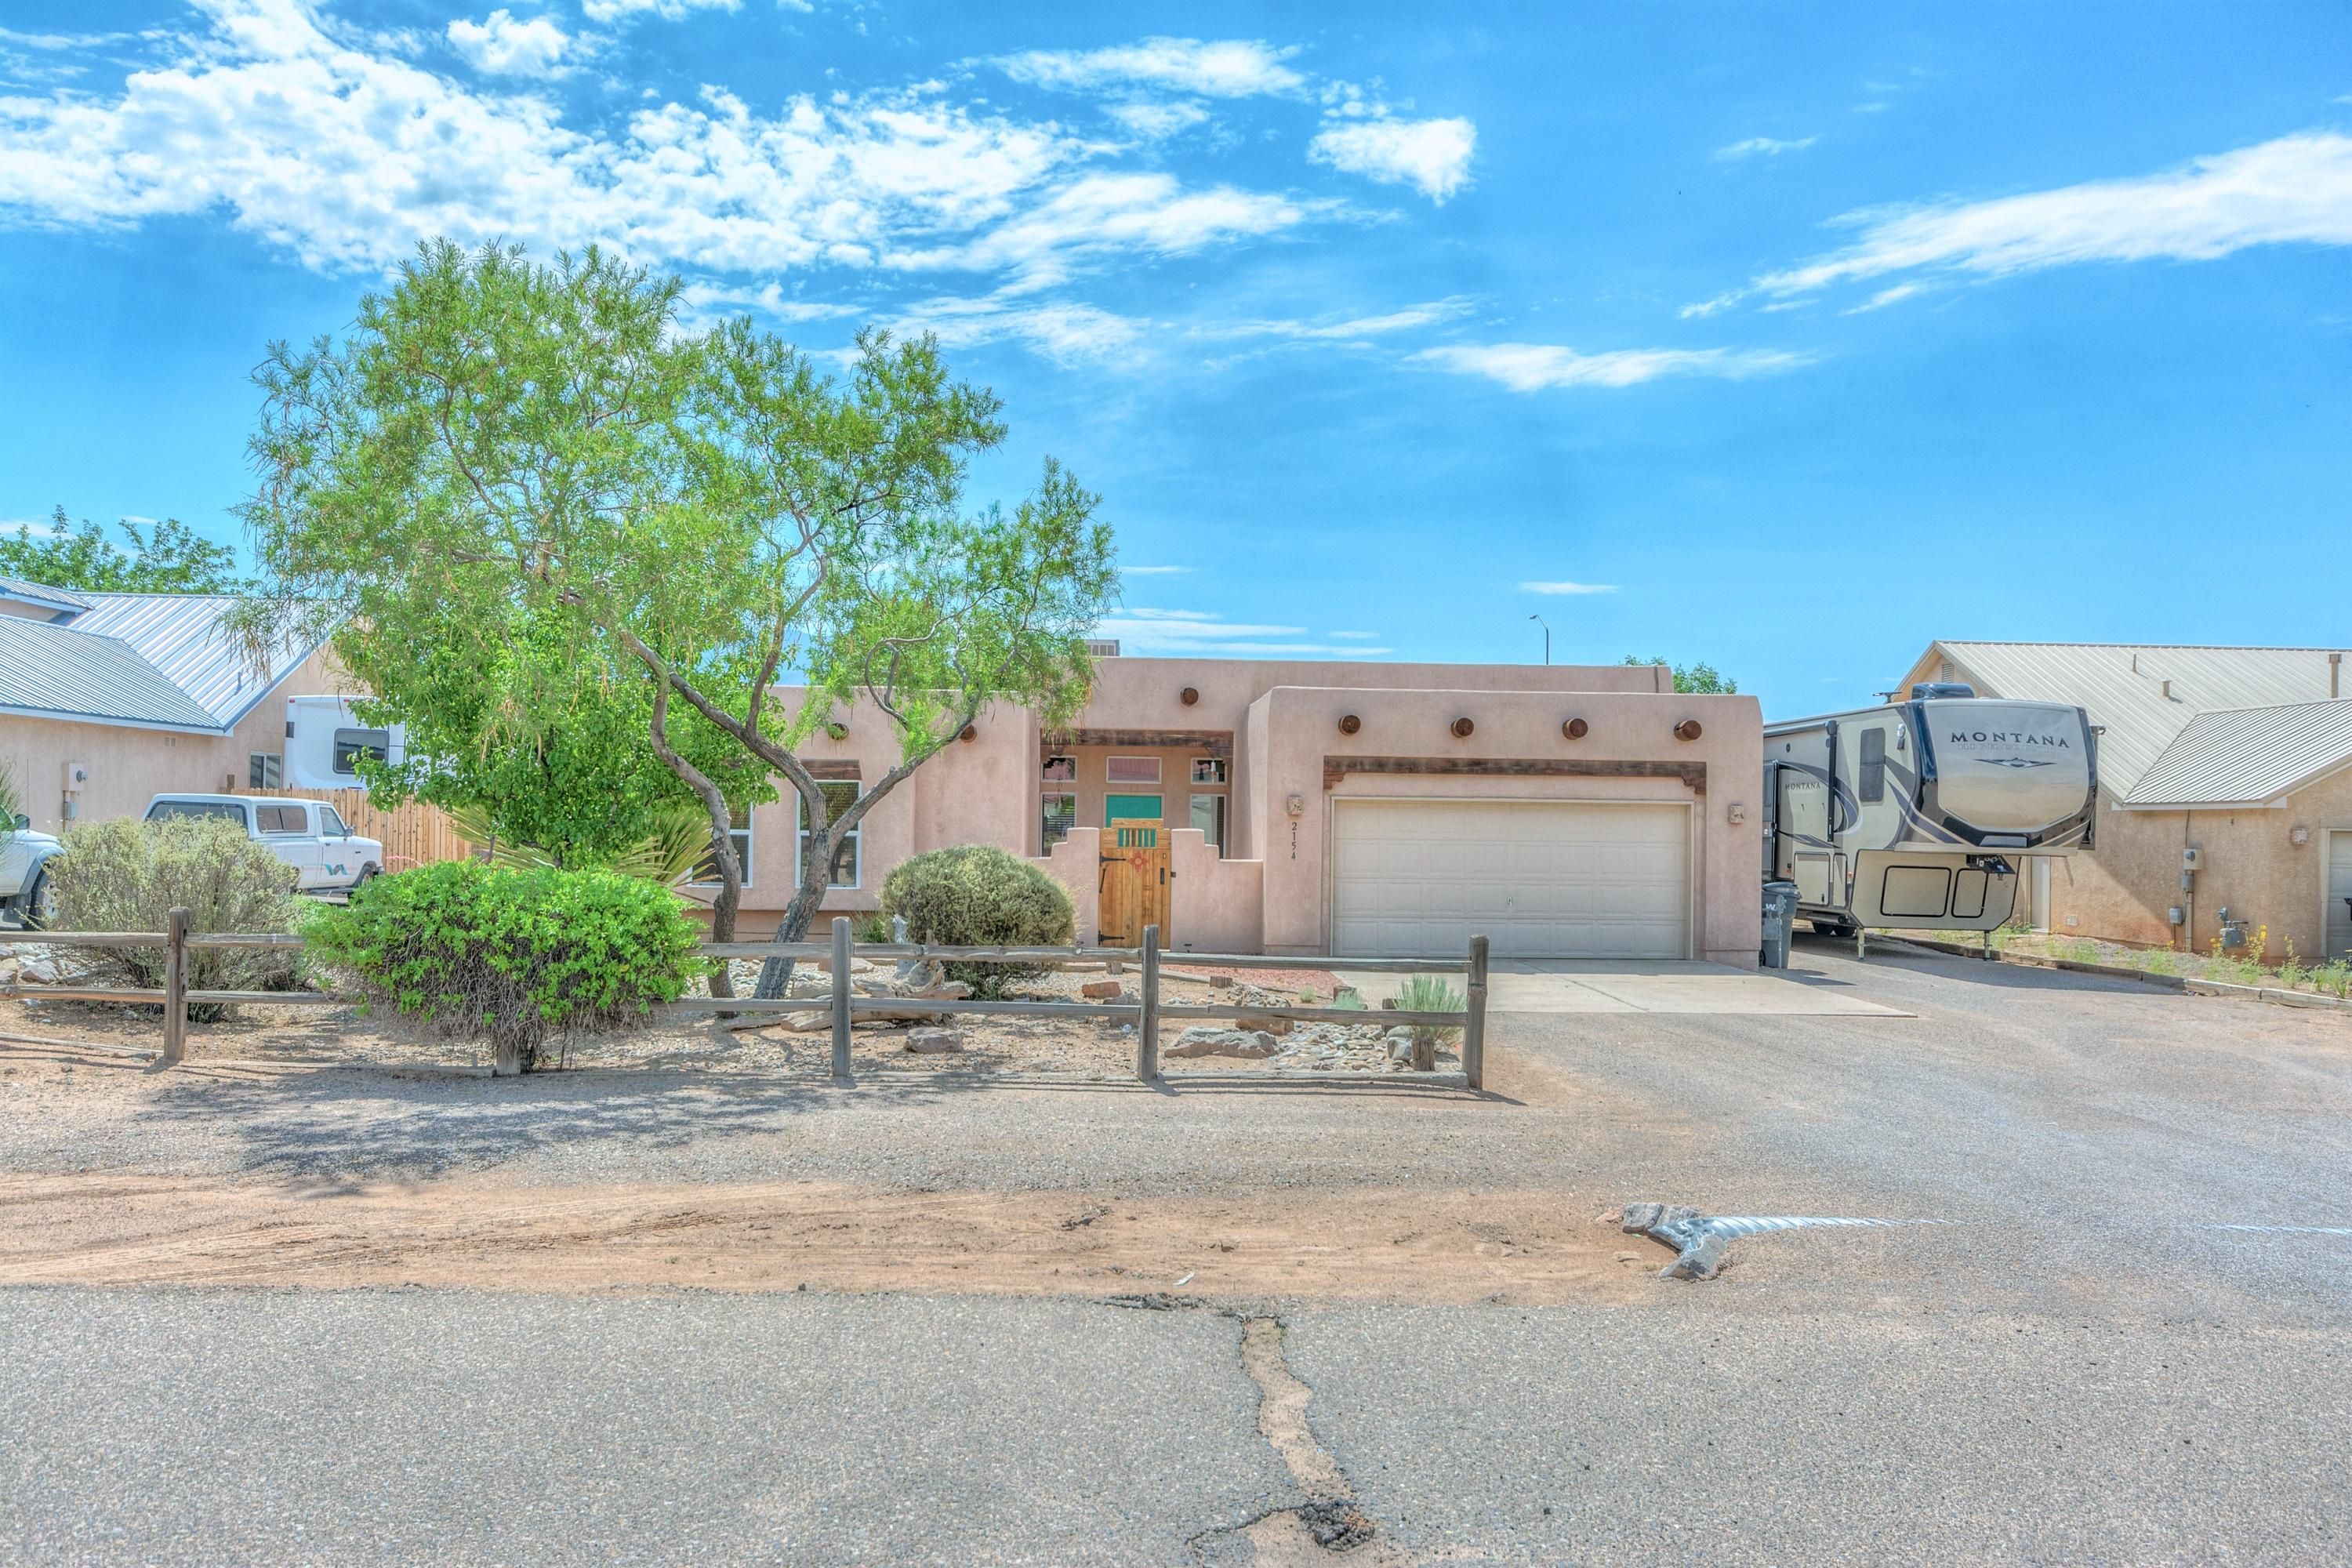 Pride of ownership! Gorgeous southwestern style home. Amazing views from your custom back patio! Back yard access. RV parking complete with clean out to the septic tank and electrical to get recharged! Garage is a tandem garage and has plenty of space to tinker or for storage! Easy access to Highway 528 for shopping and convenience.